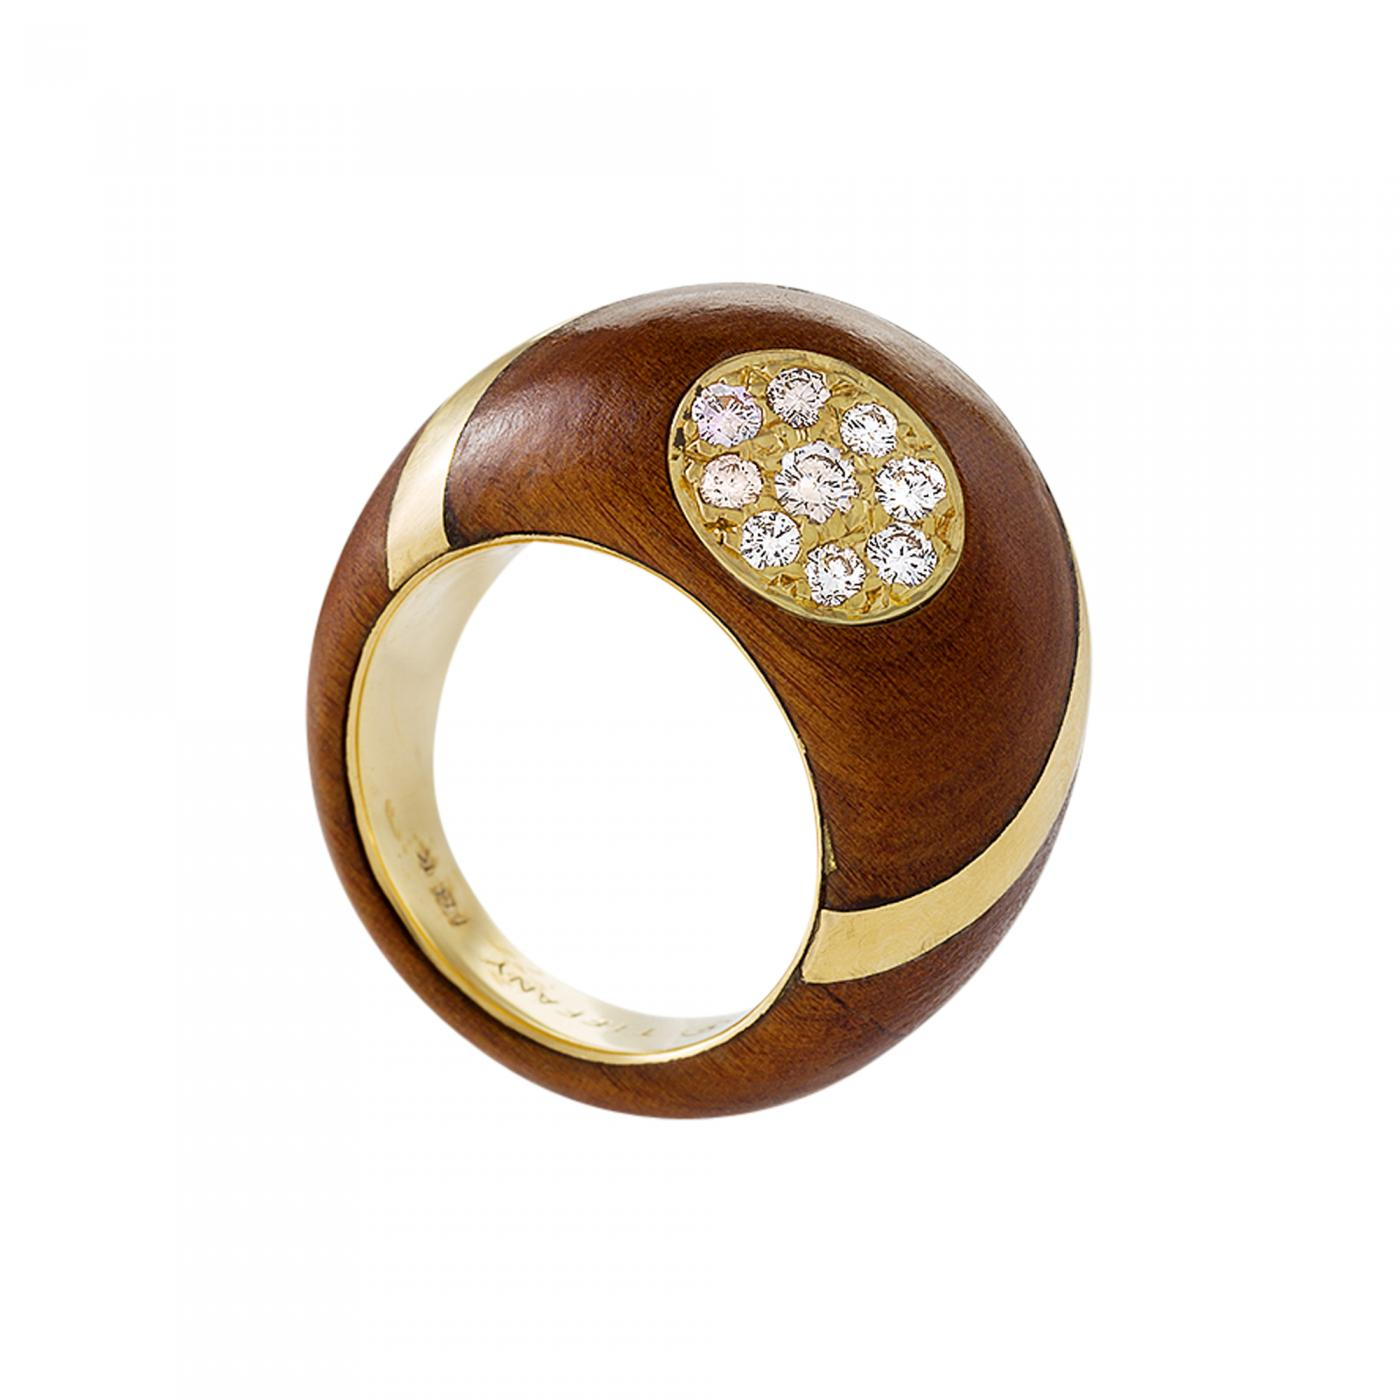 f881990c2 Carvin French for Tiffany & Co. Estate Diamond Gold and Wood Bombé Ring